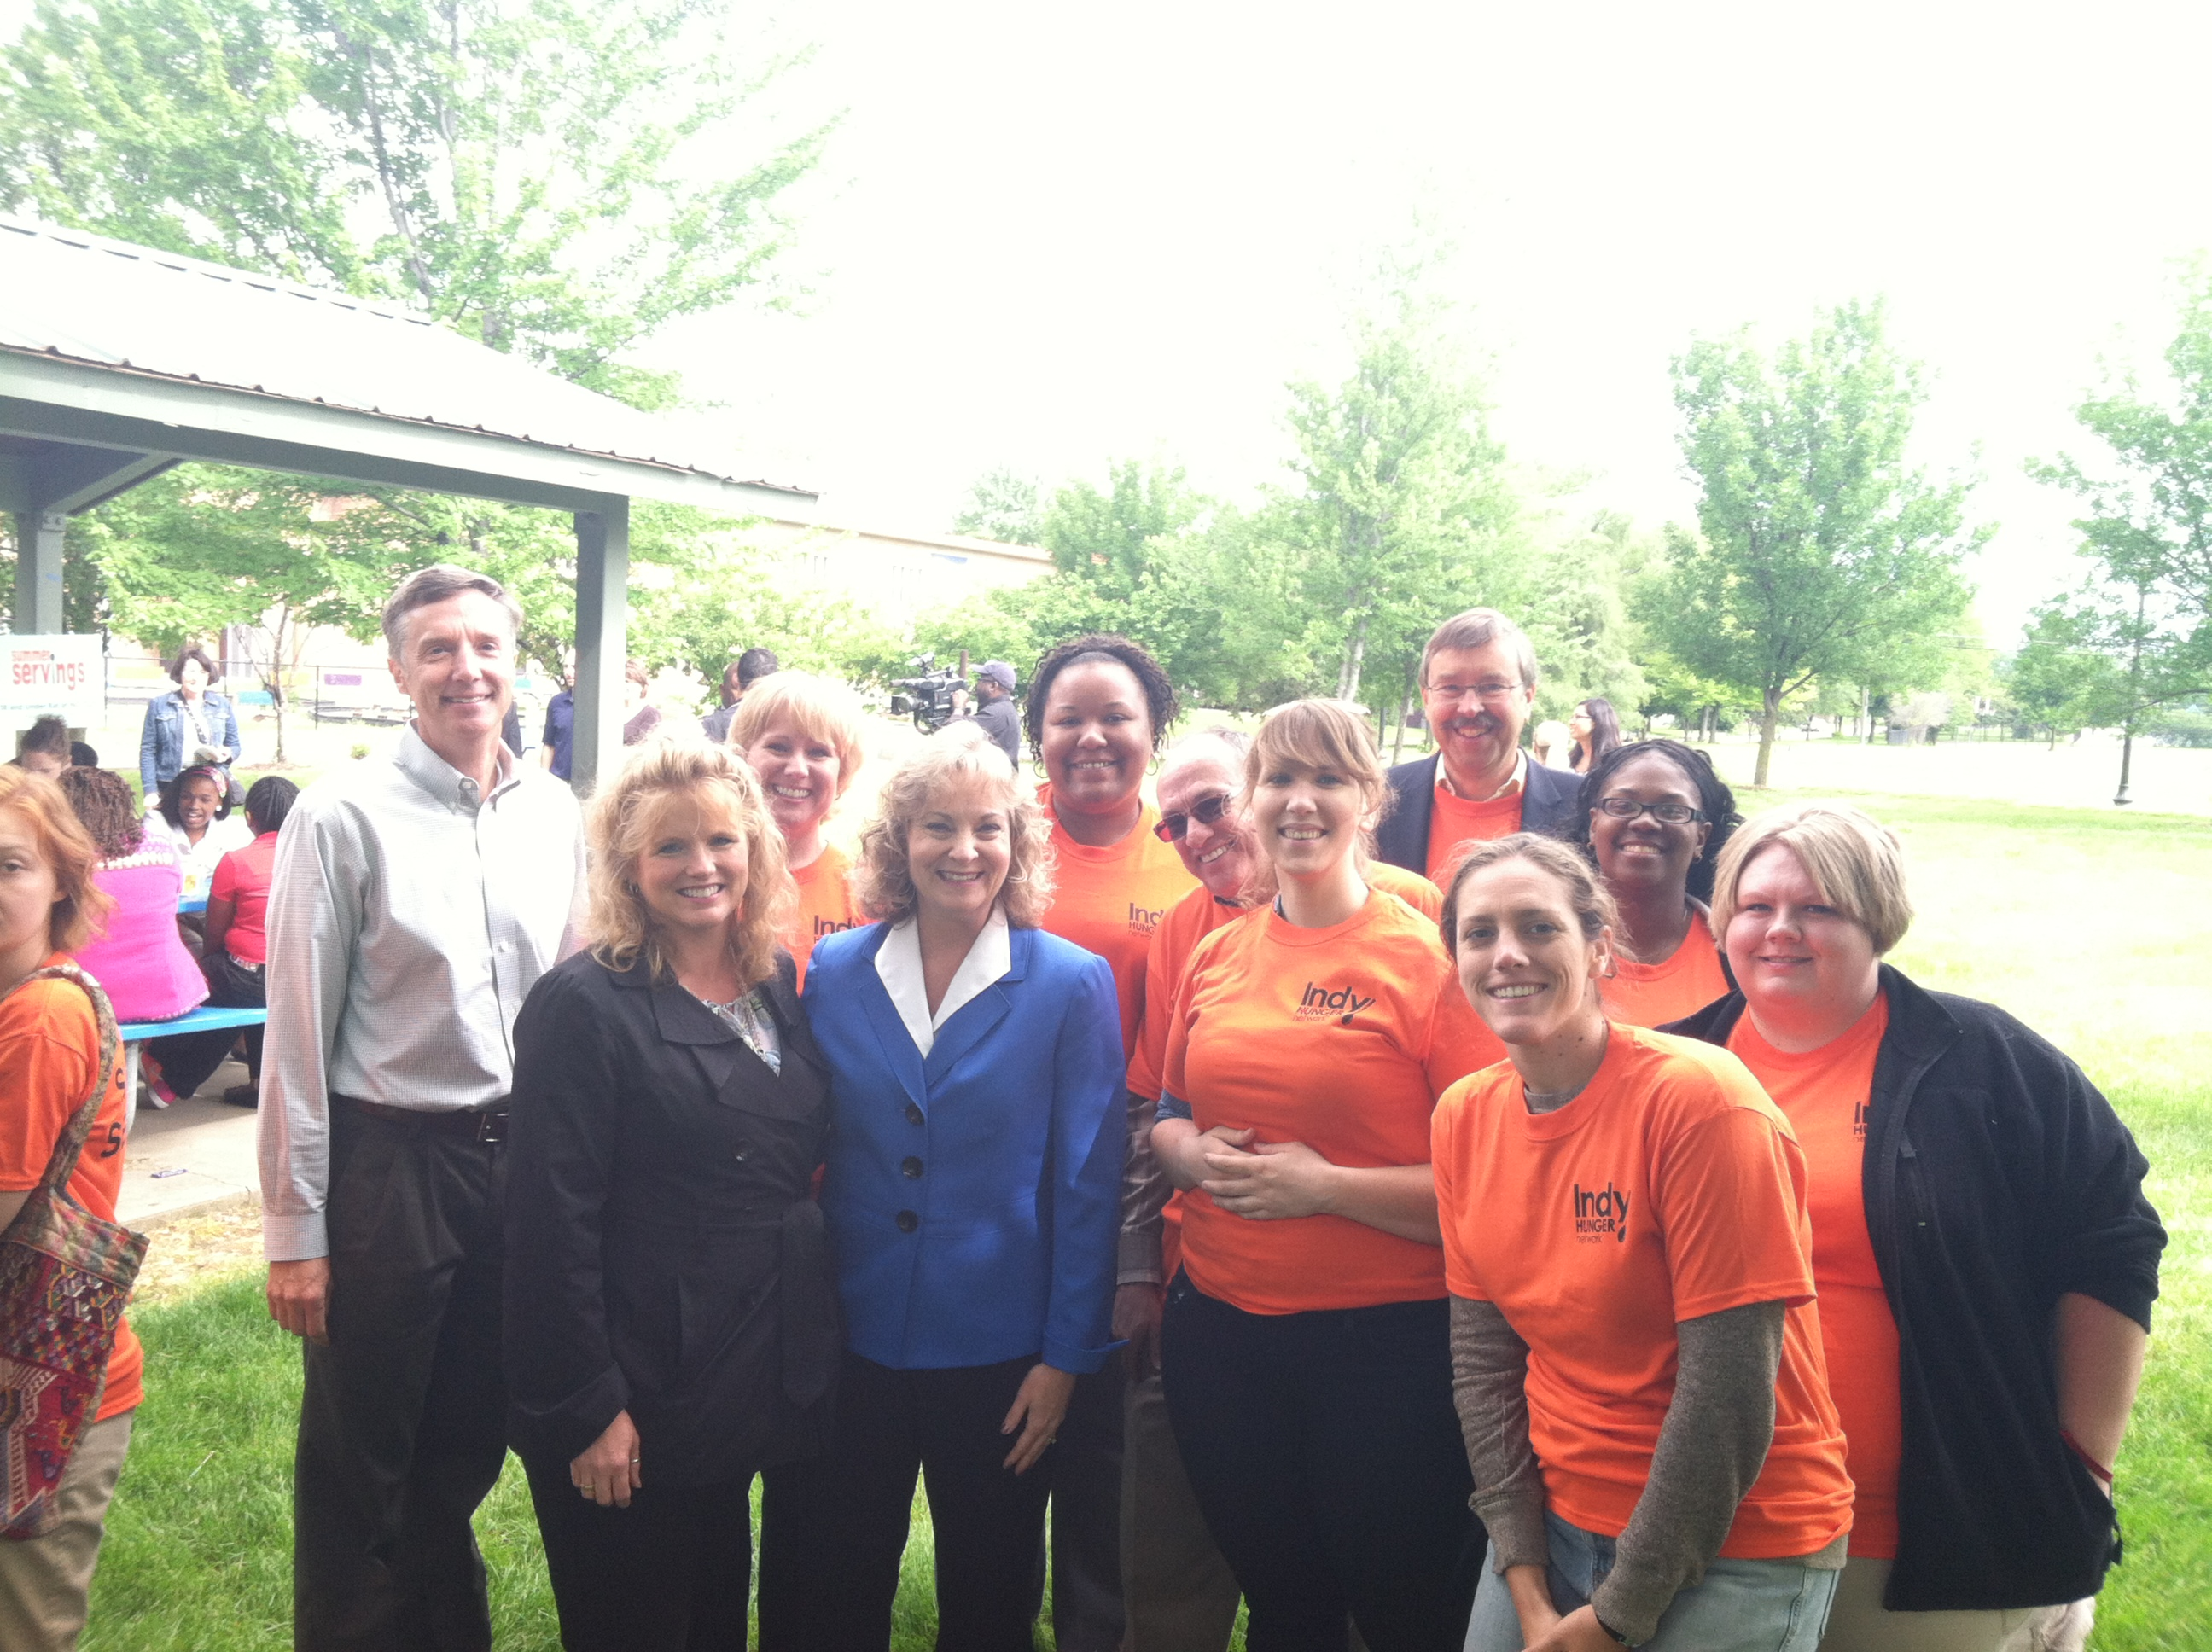 Summer Servings Volunteers with Glenda Ritz, Indiana Superintendent of Public Instruction